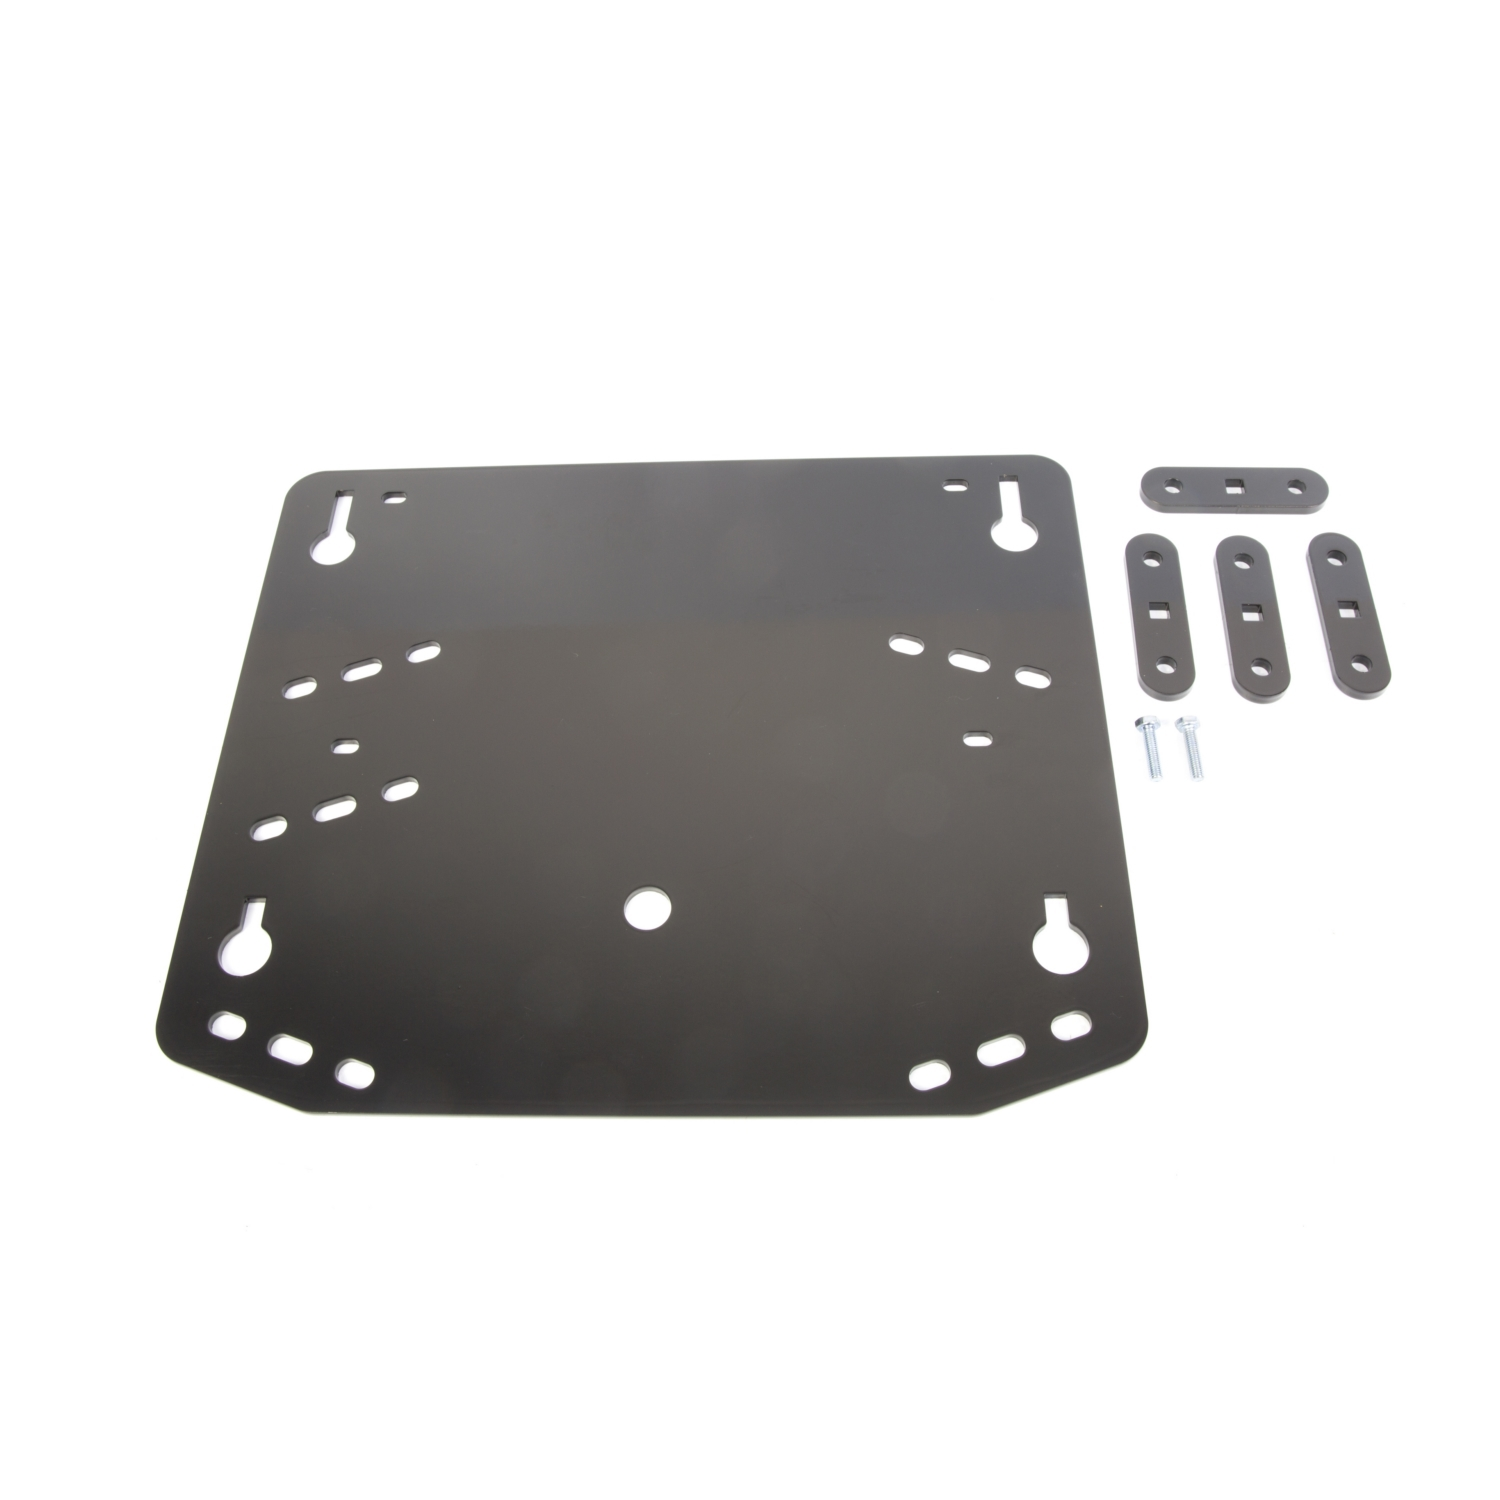 CLICK nGO CNG 2 Snow Plow Bracket for UTV Black  #374377